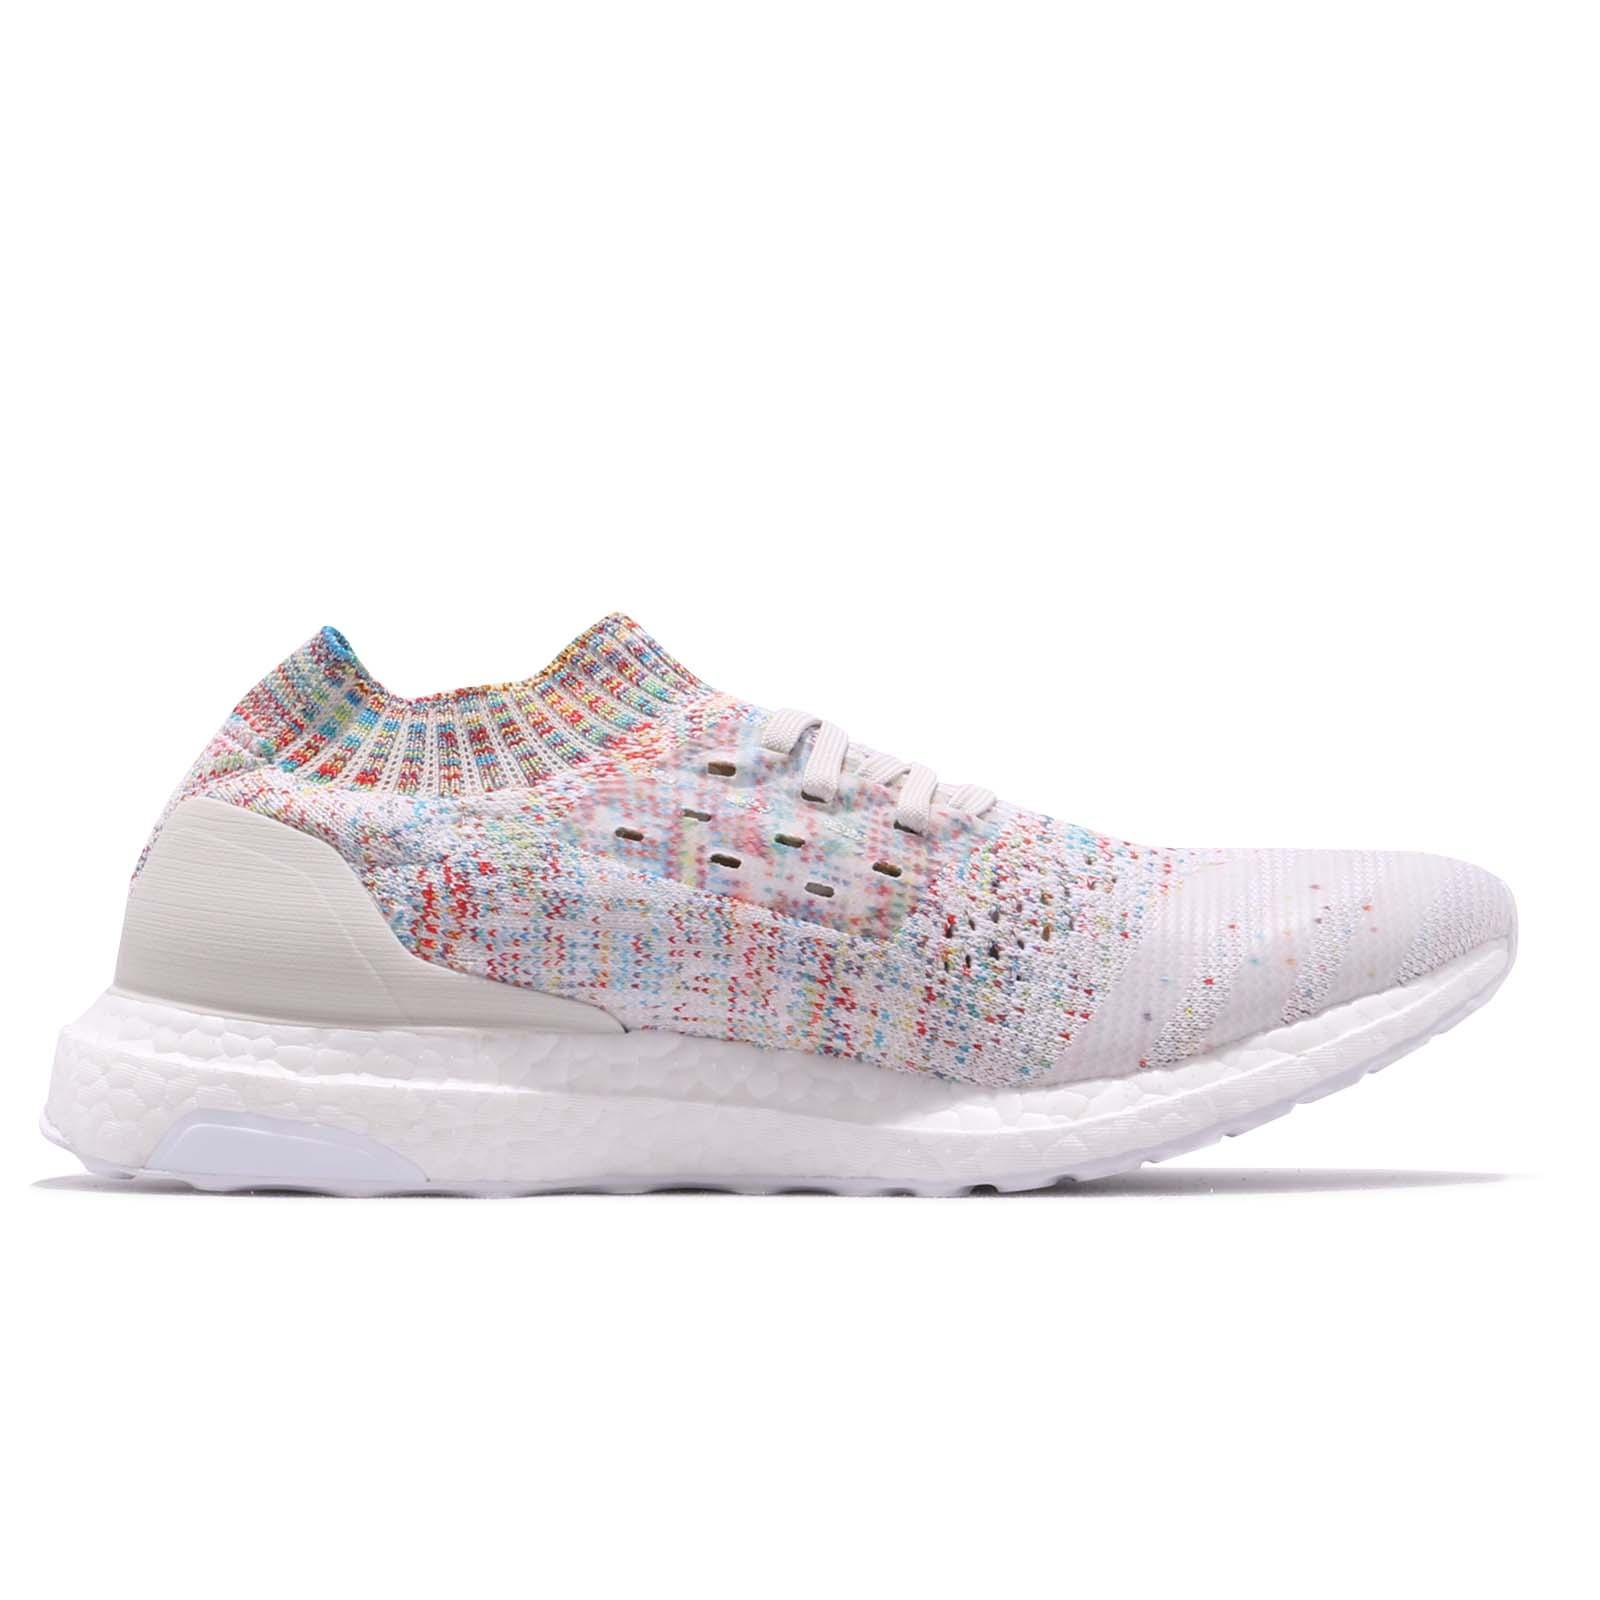 80415c01480 adidas UltraBOOST Uncaged White Shock Cyan Multi-Color Men Women ...